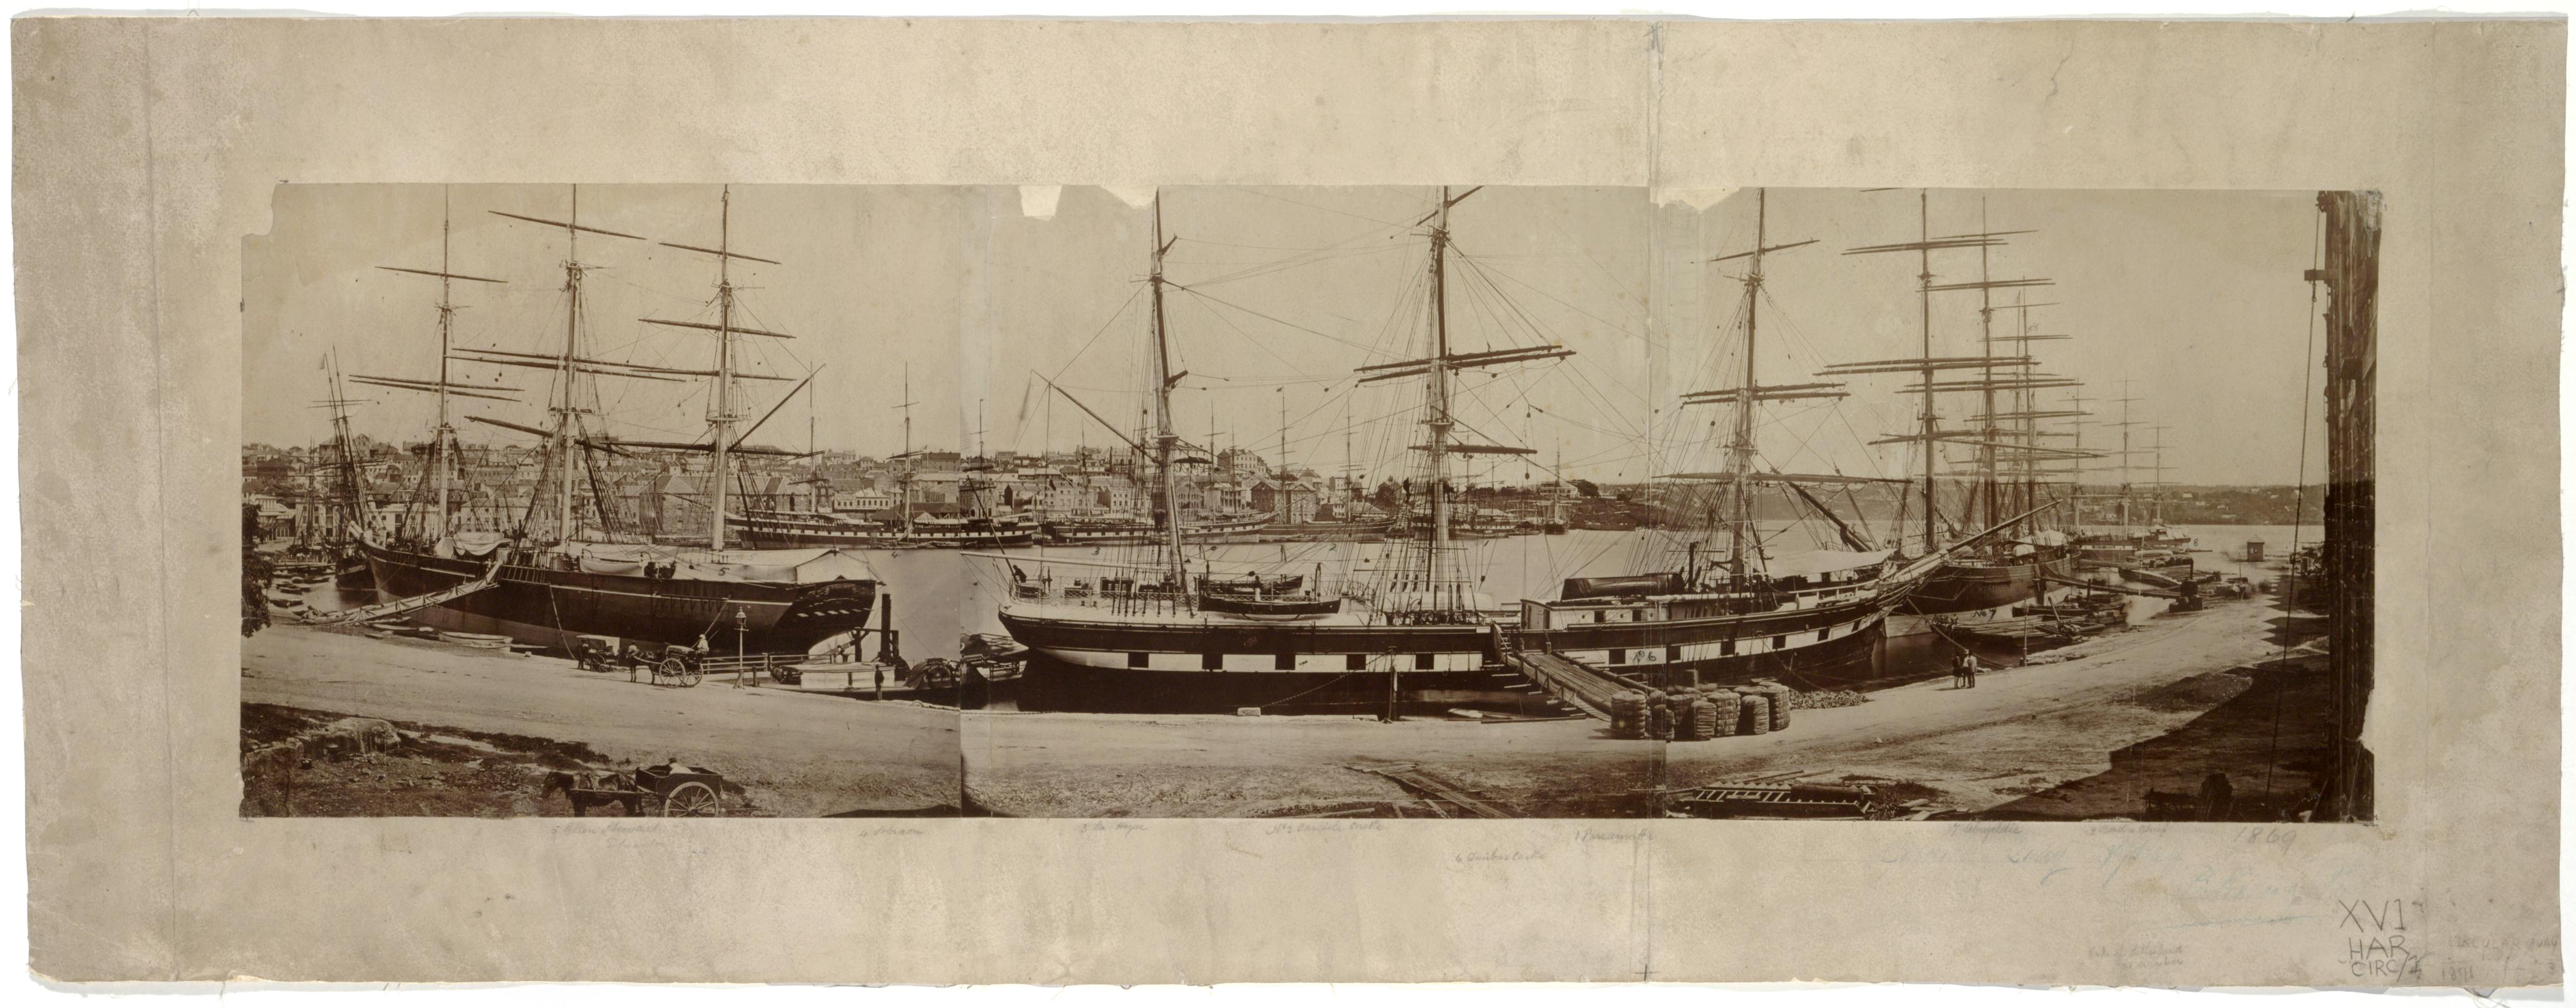 Circular Quay, 1871 / photographed by Charles Percy Pickering